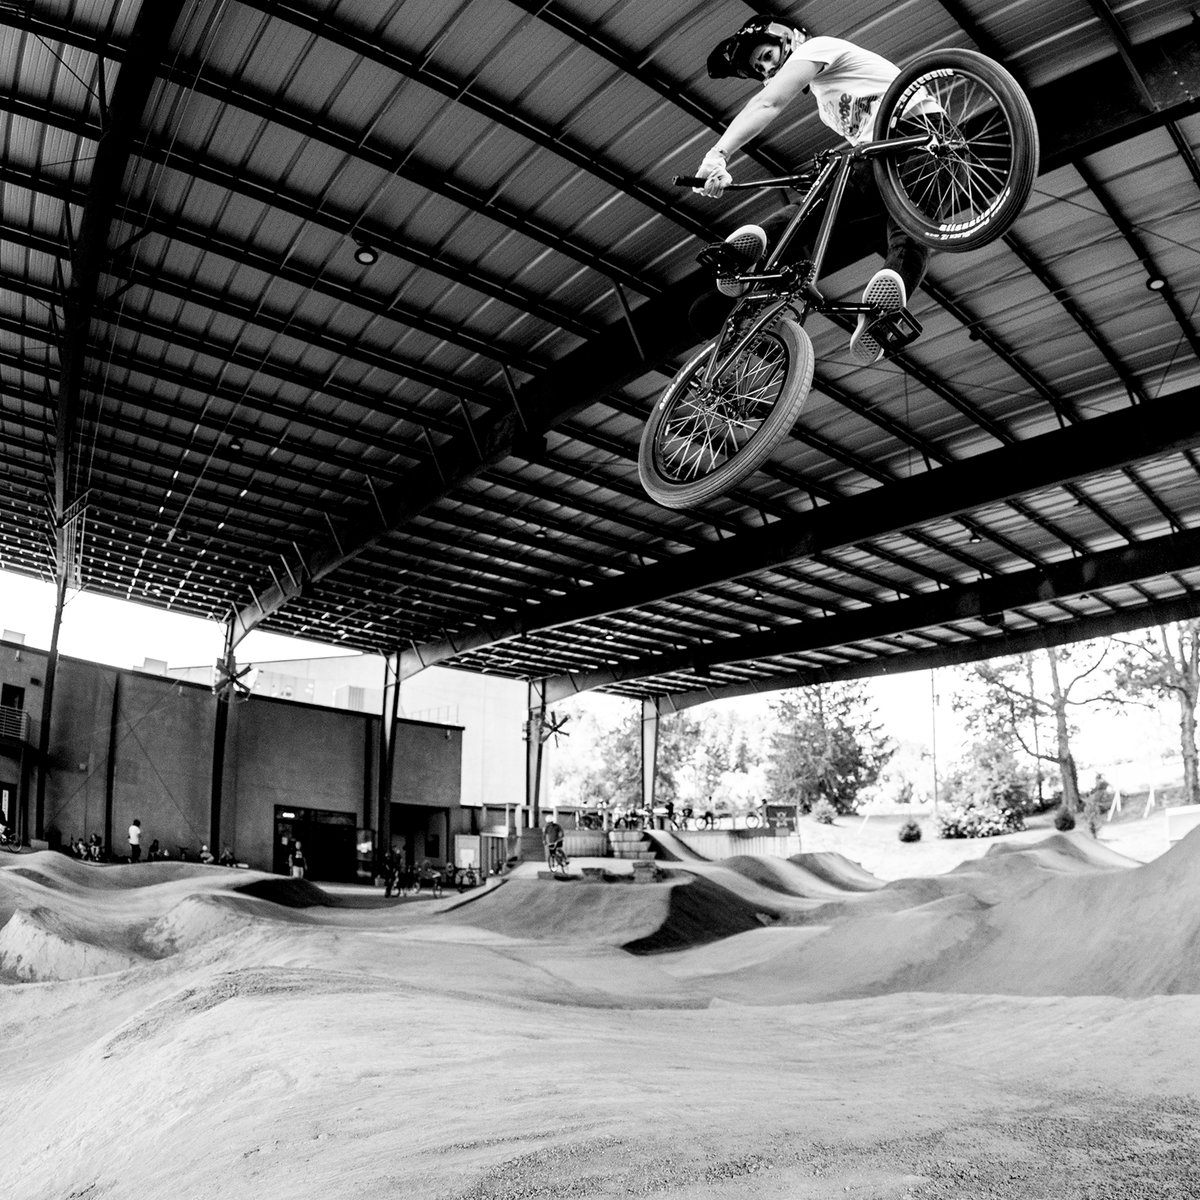 Proper turndown by @NikitaDucarroz at Riveter in Asheville, NC. @Mongoose https://t.co/eYl49ZmqF8